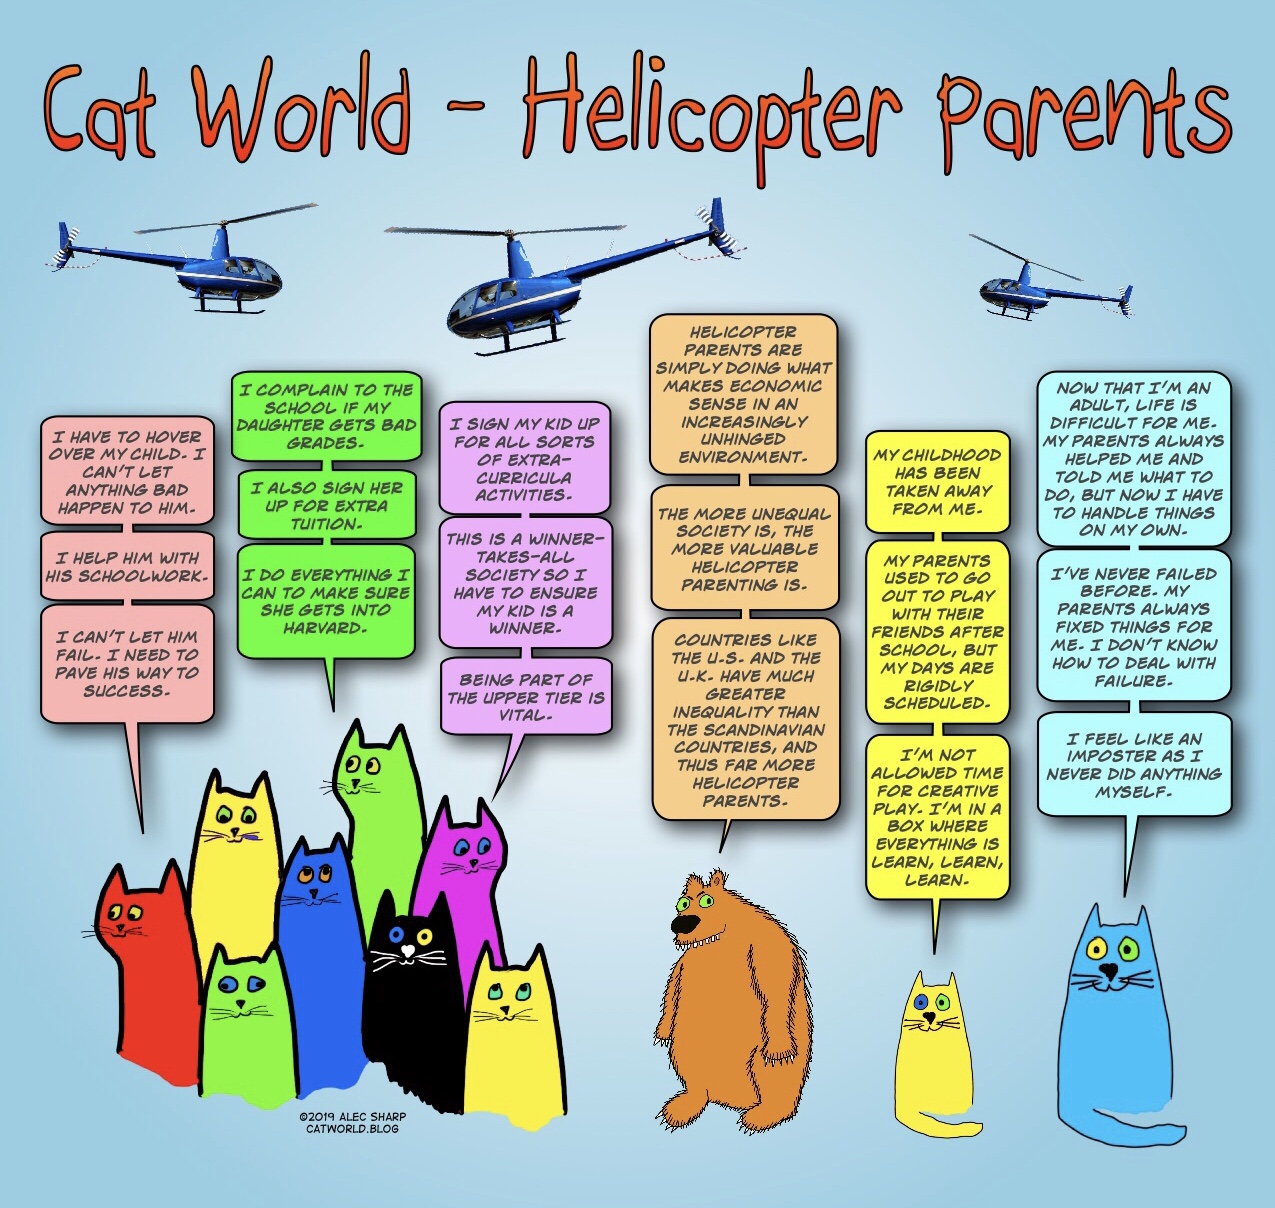 Helicopter Parents | Cat World